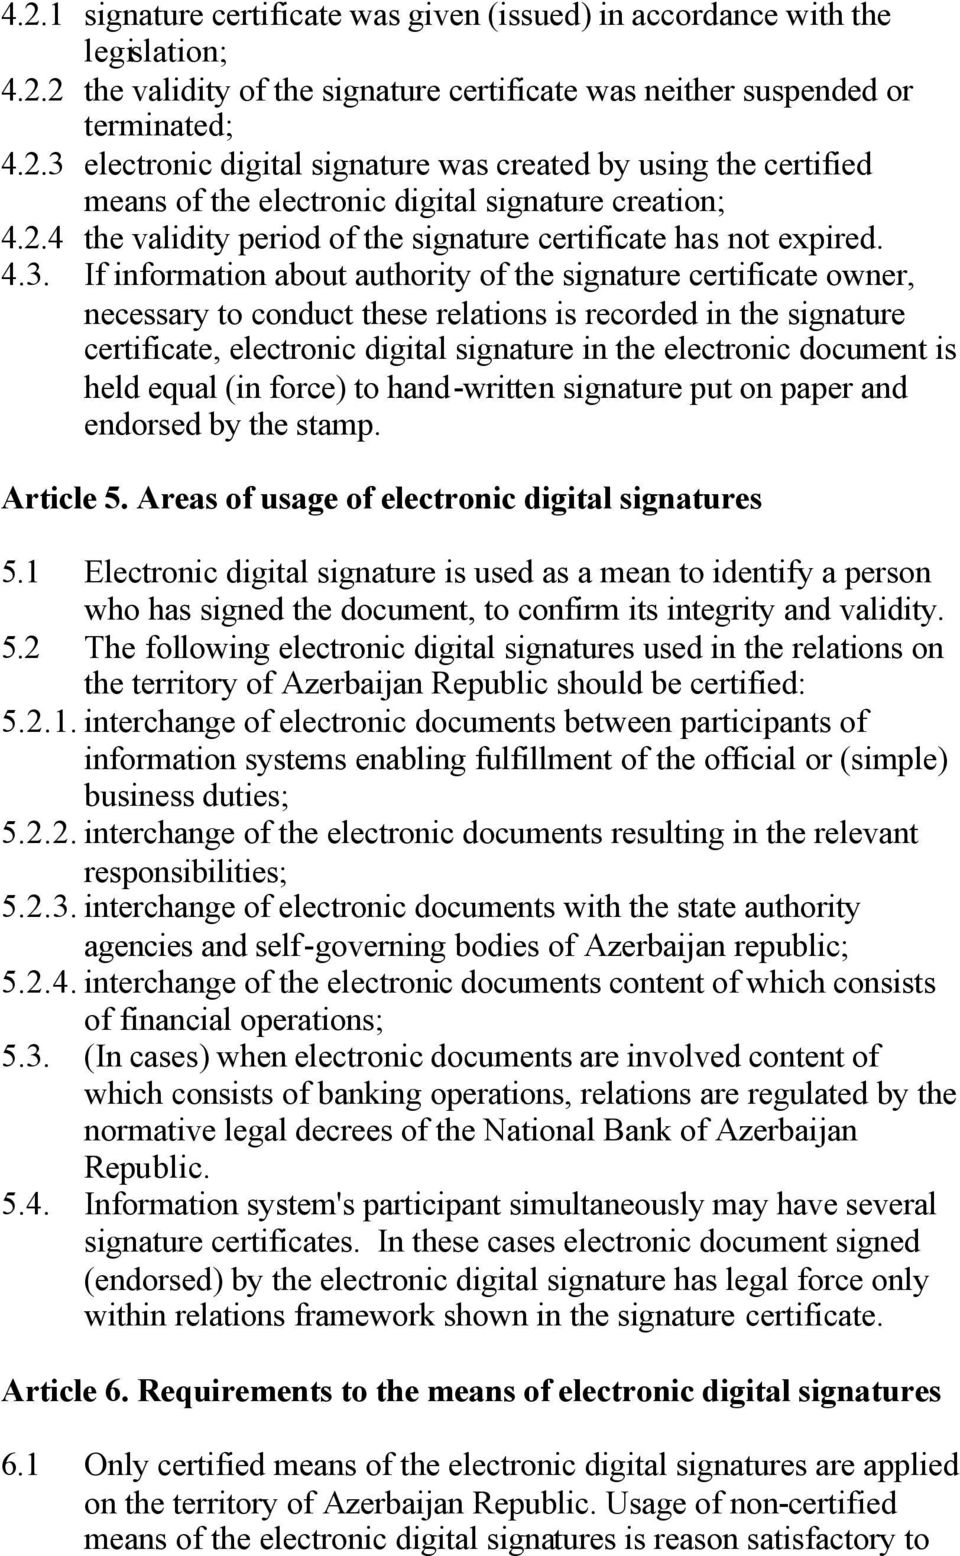 If information about authority of the signature certificate owner, necessary to conduct these relations is recorded in the signature certificate, electronic digital signature in the electronic